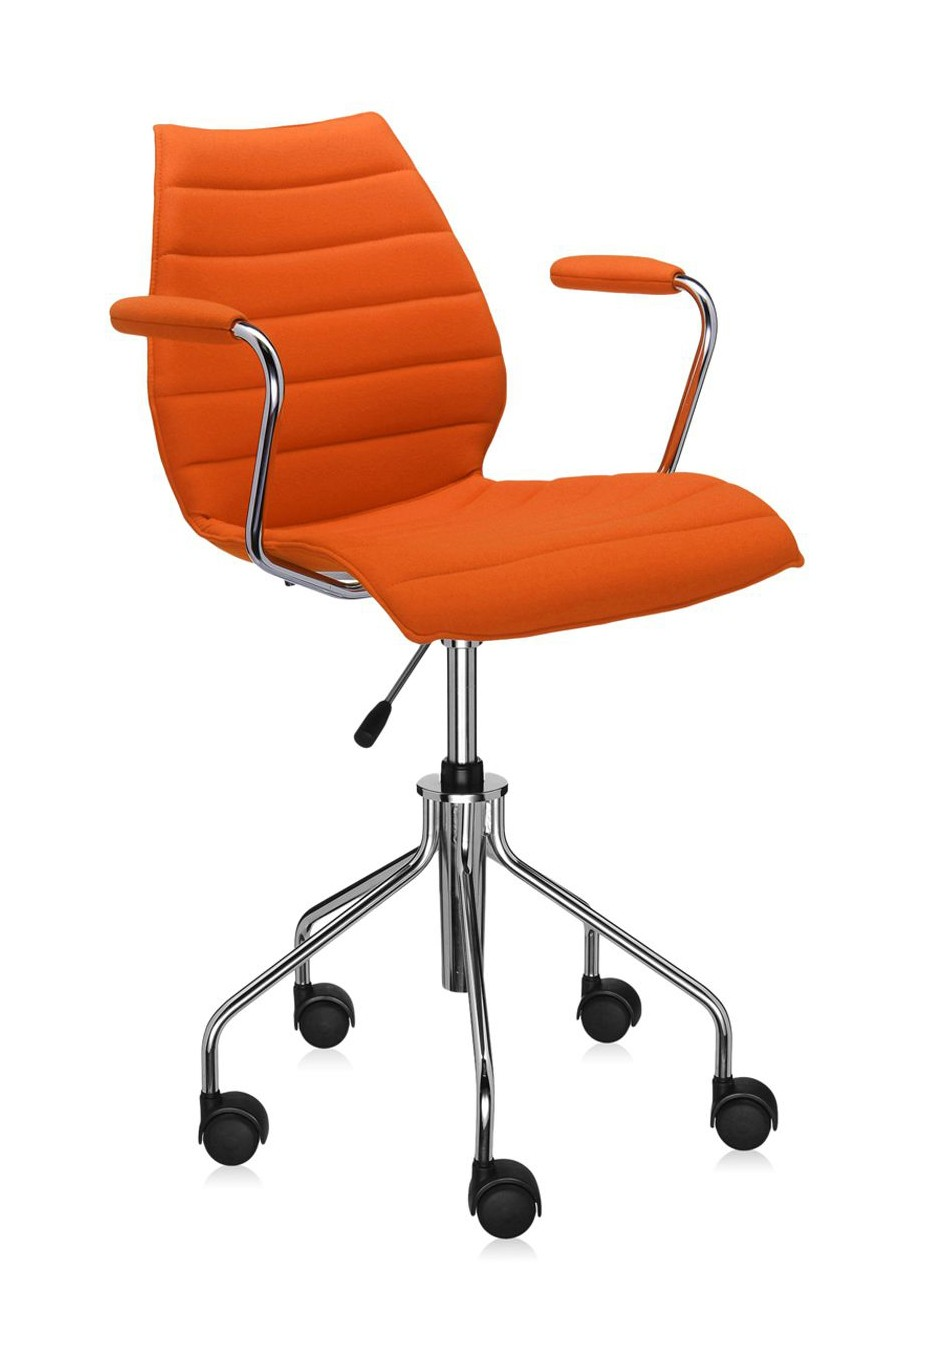 Kartell Maui Soft Swivel Chair